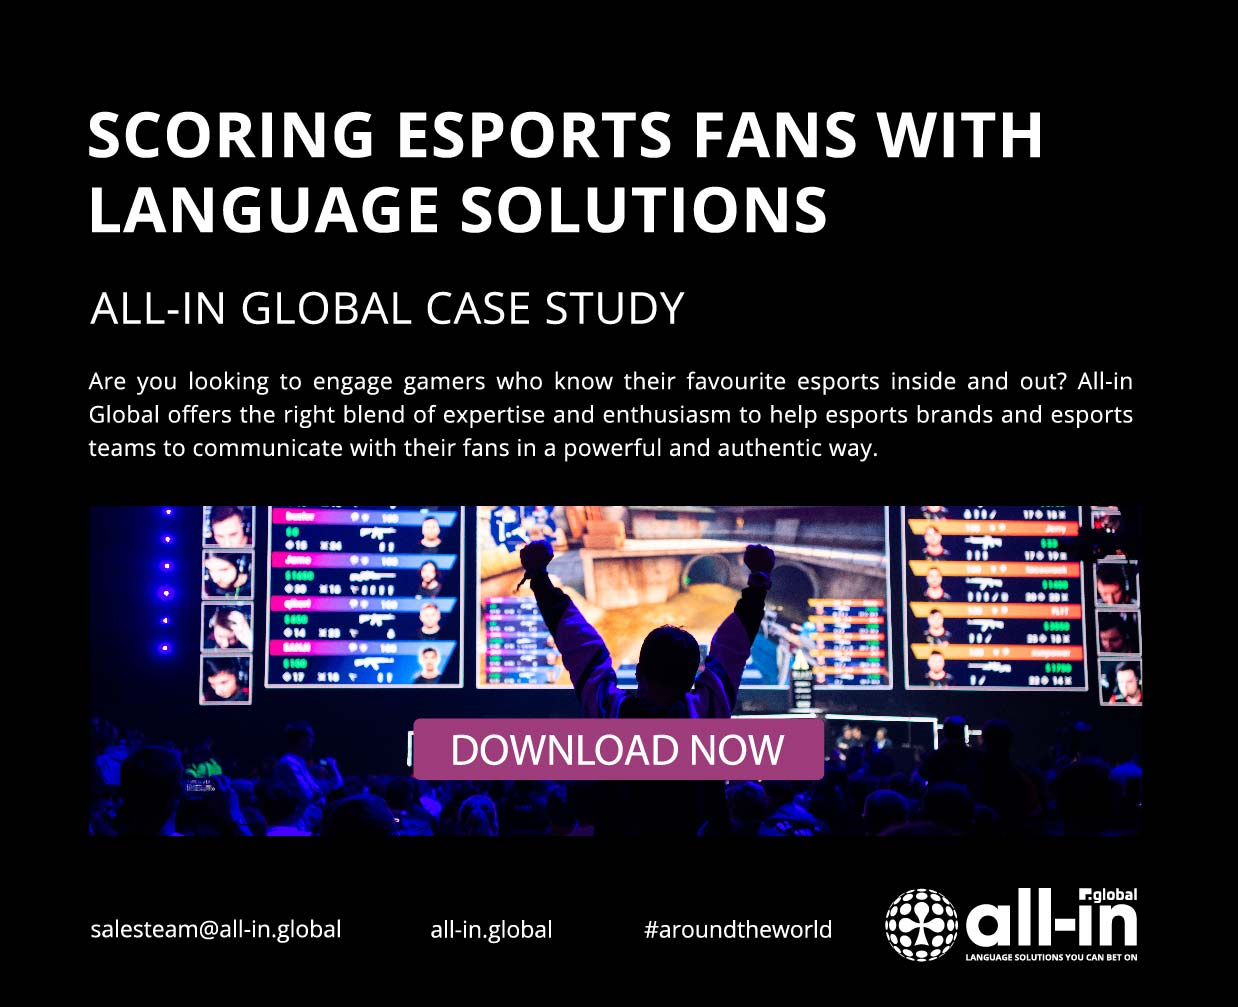 All-in Global Case Study